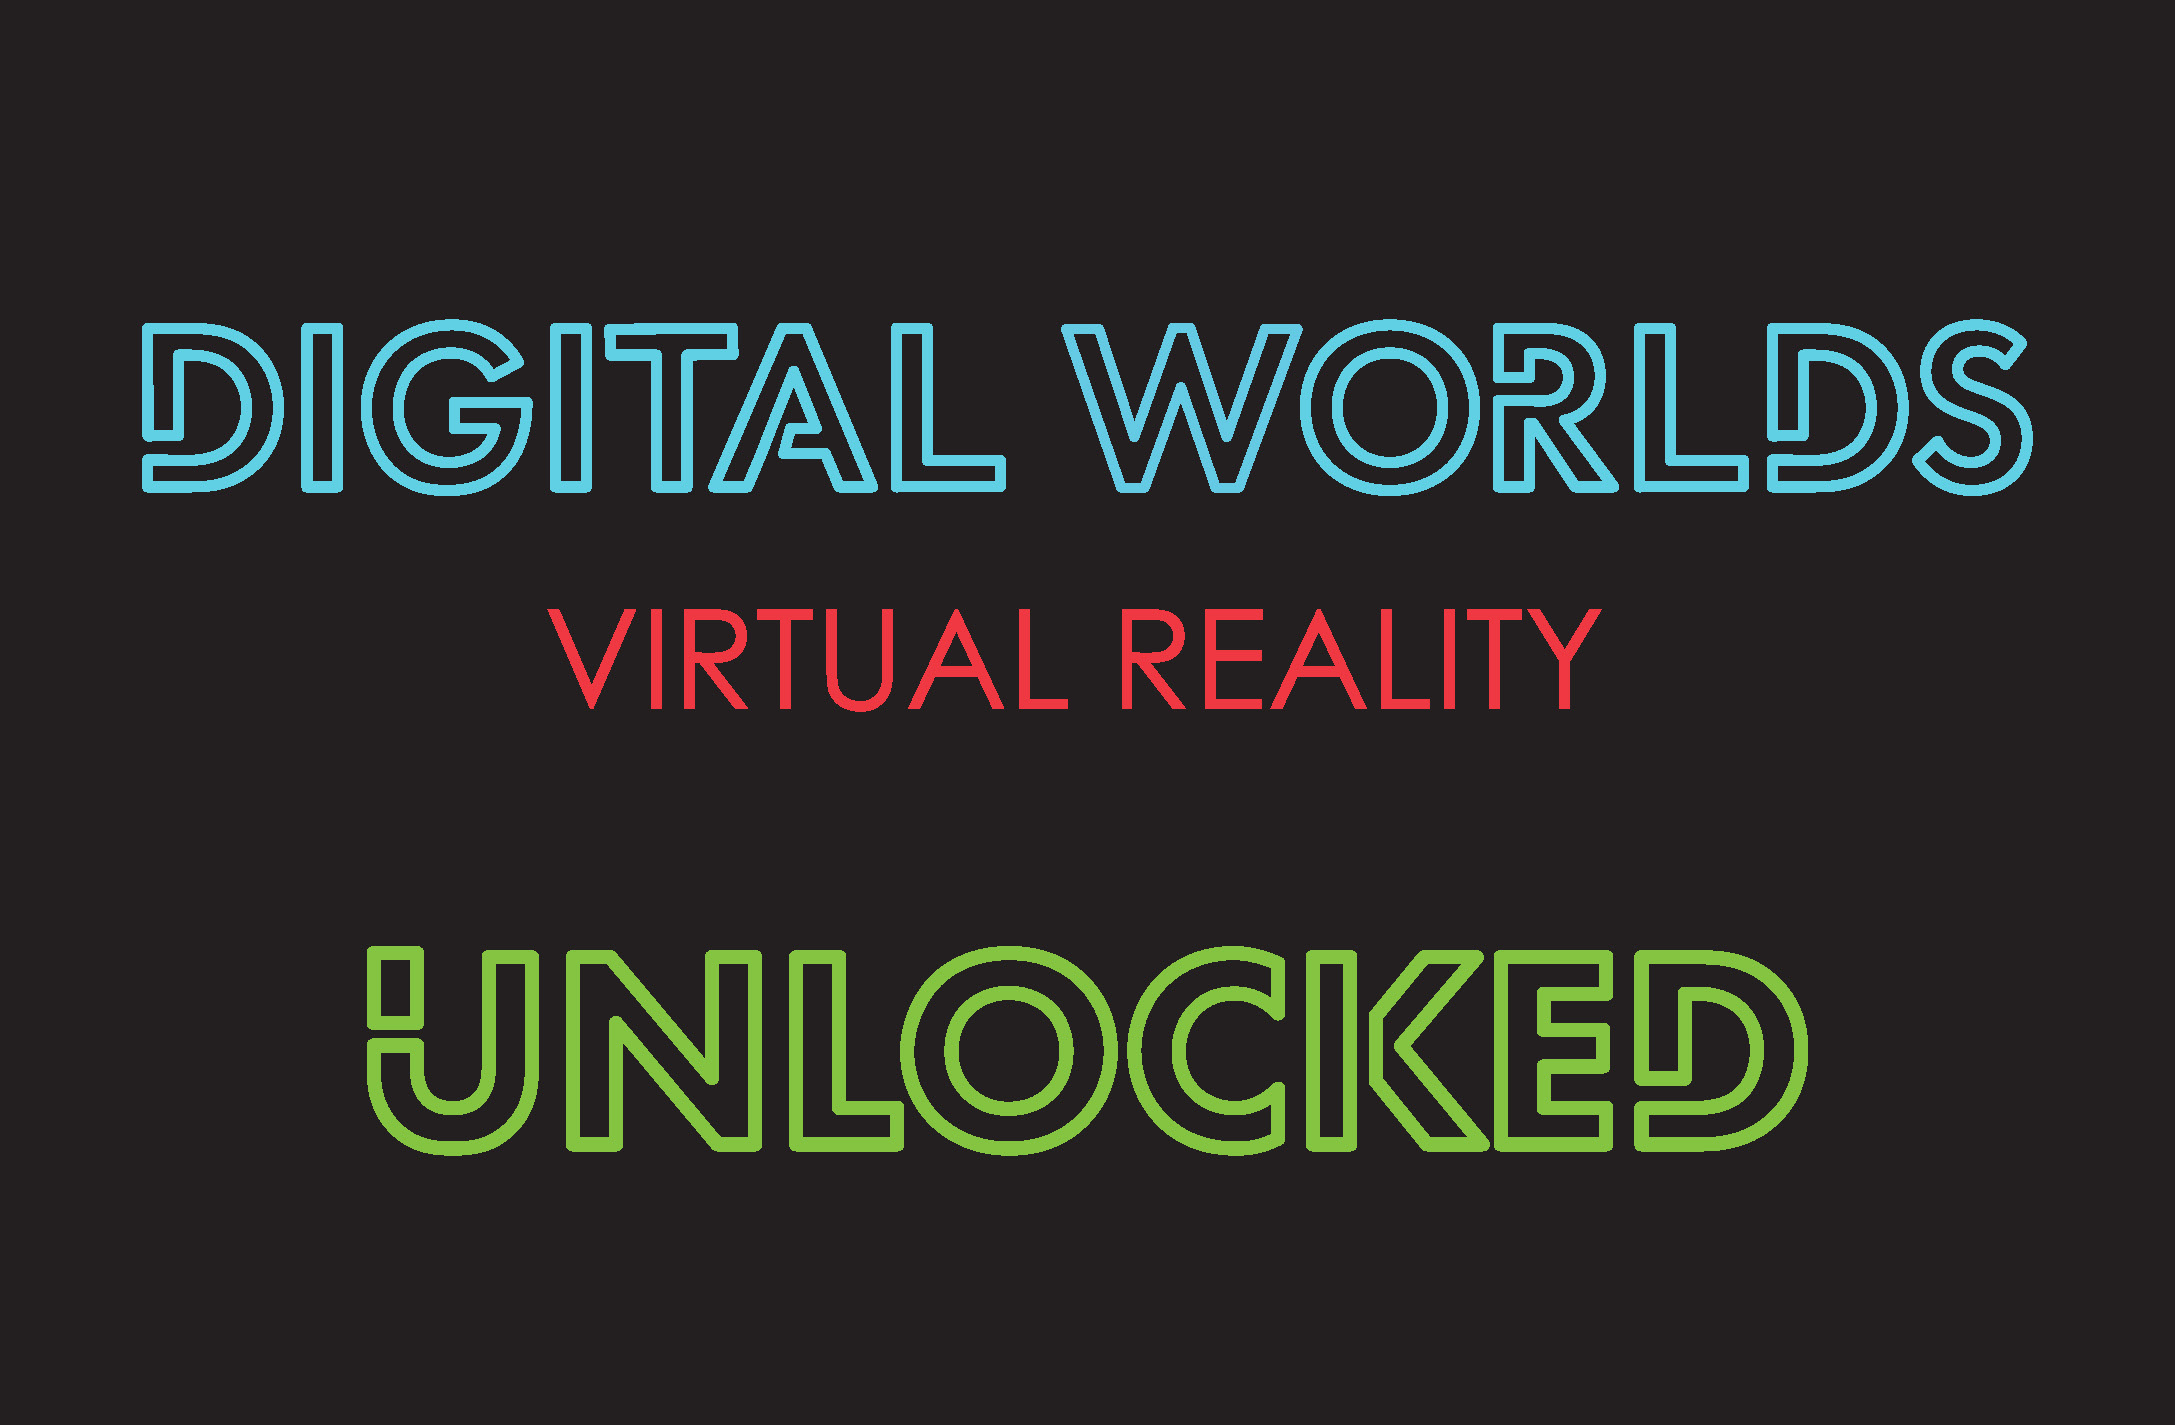 Image of the Digital Worlds Virtual Reality UNLOCKED membership logo for the VR Arcade in Franklin Tennessee.